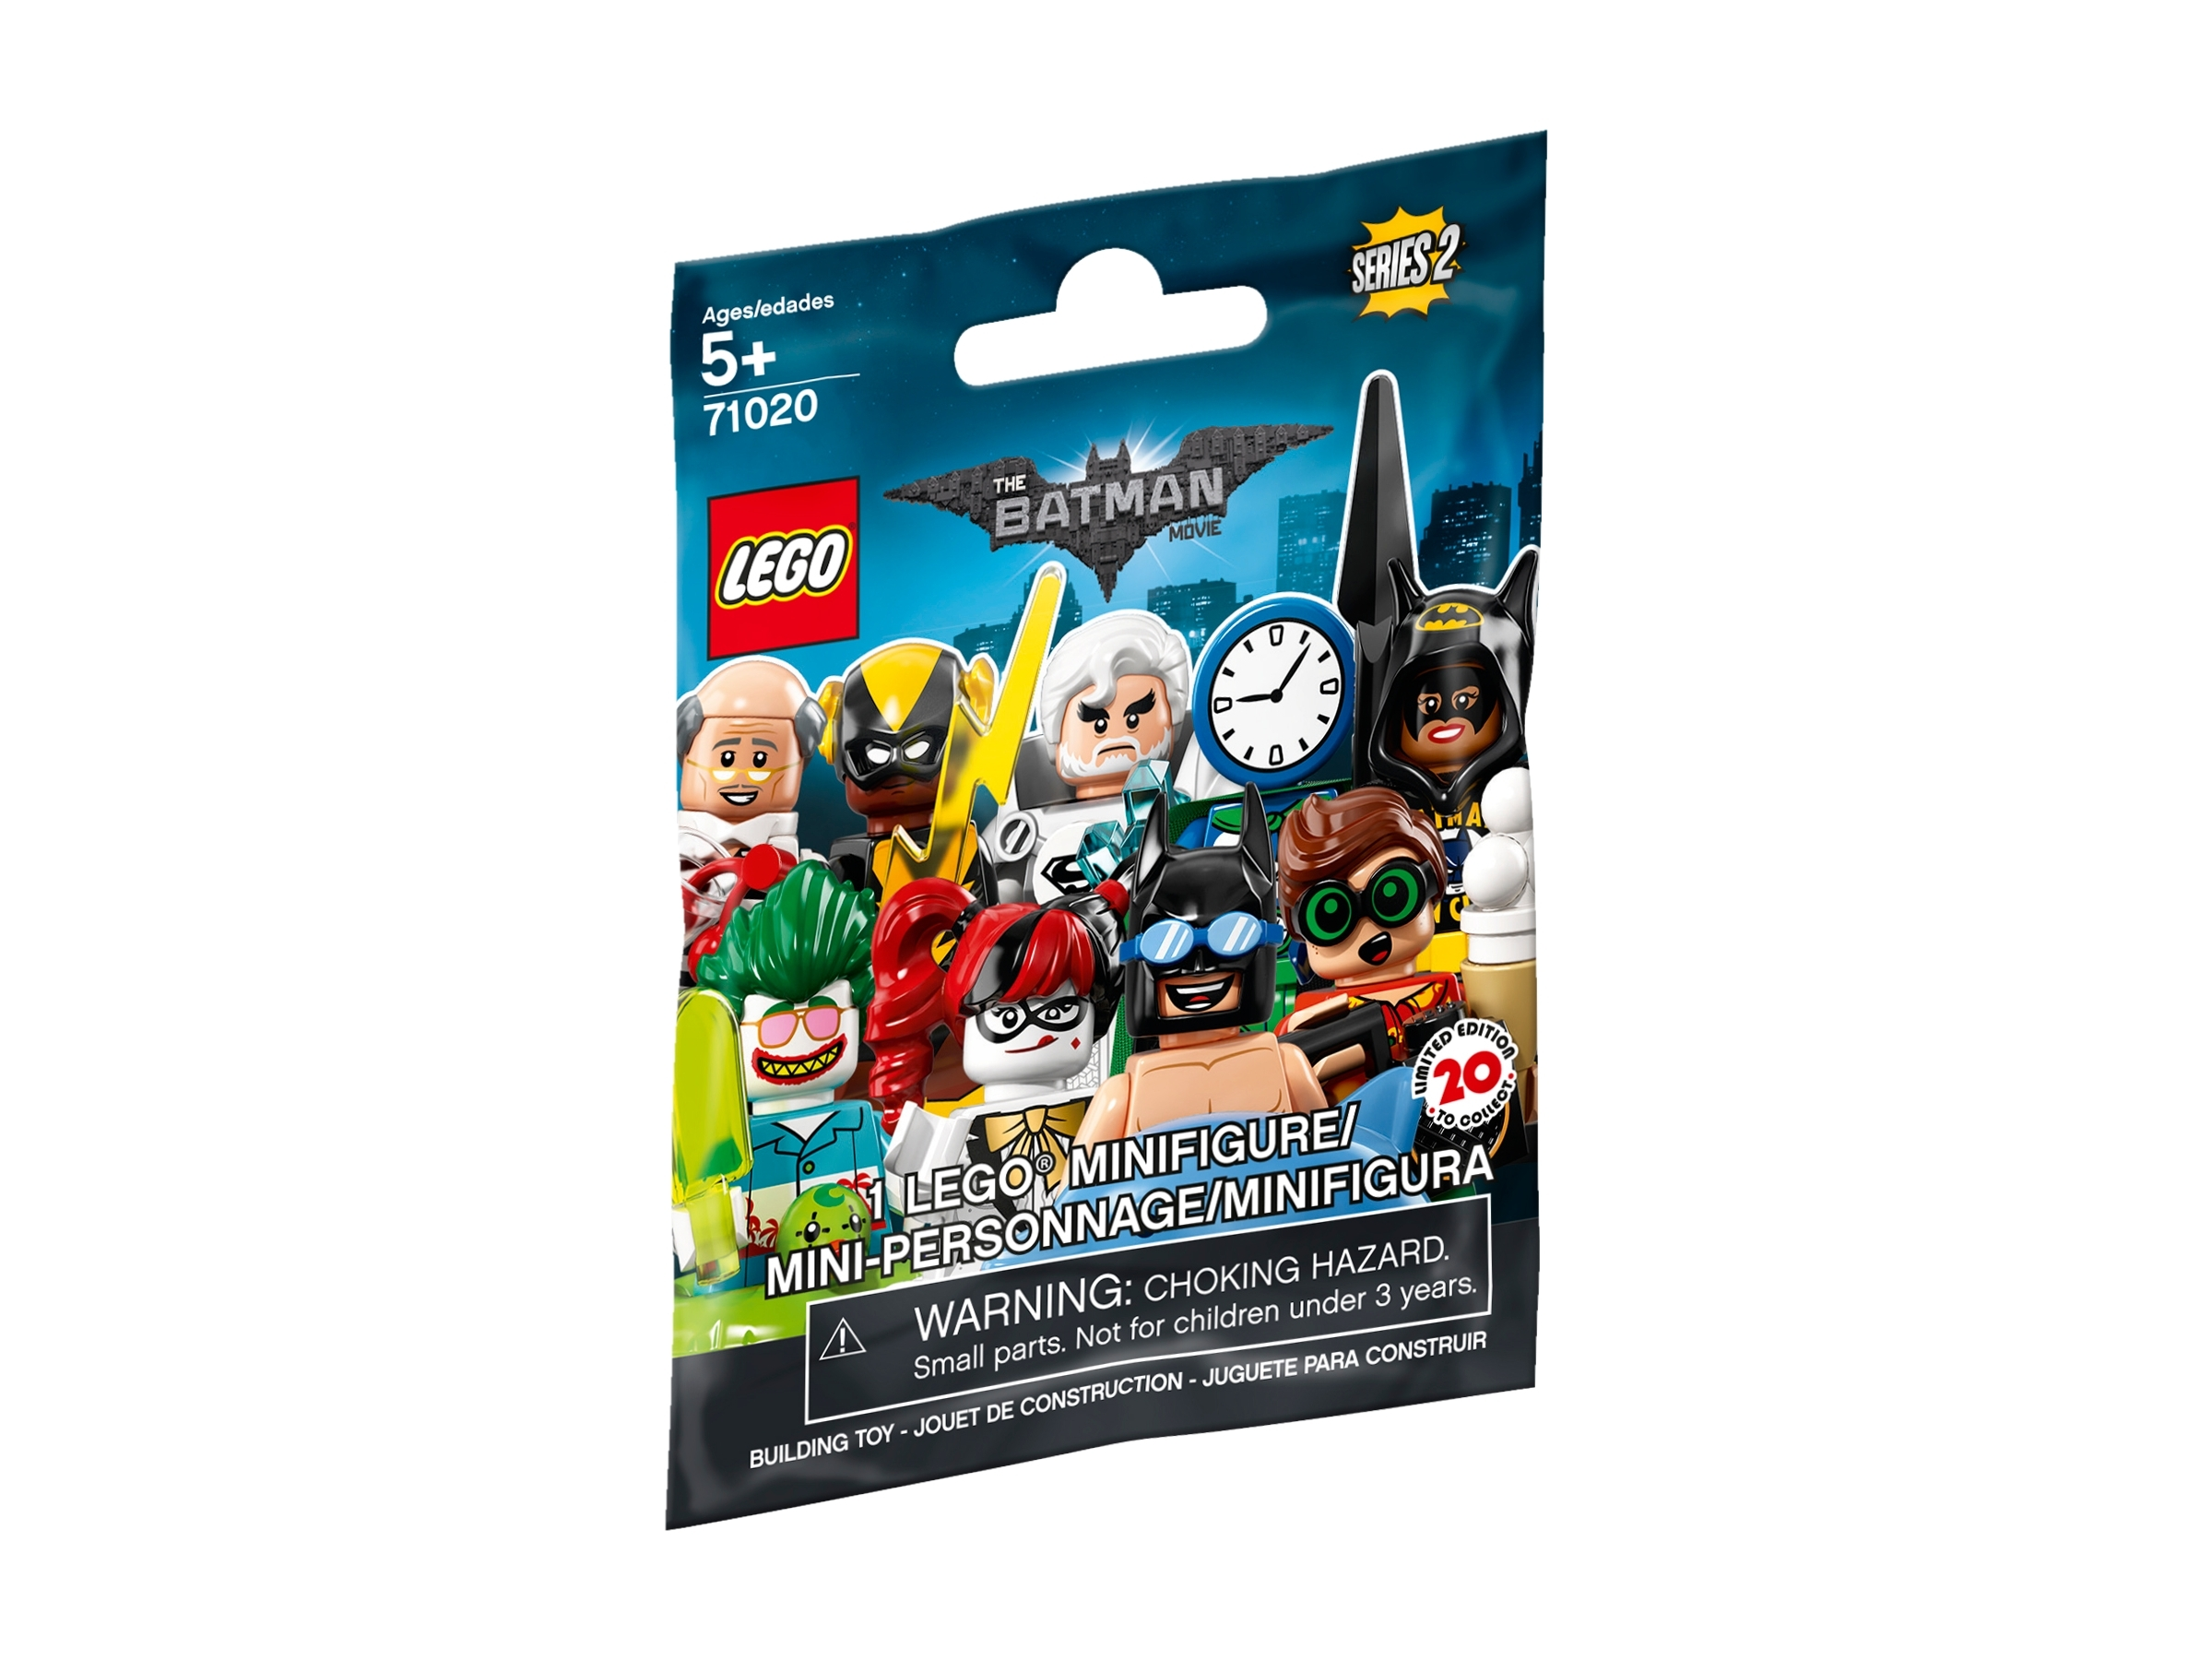 Lego ® Minifig Batman Movie Series 2-71020-Tous les 20 personnages